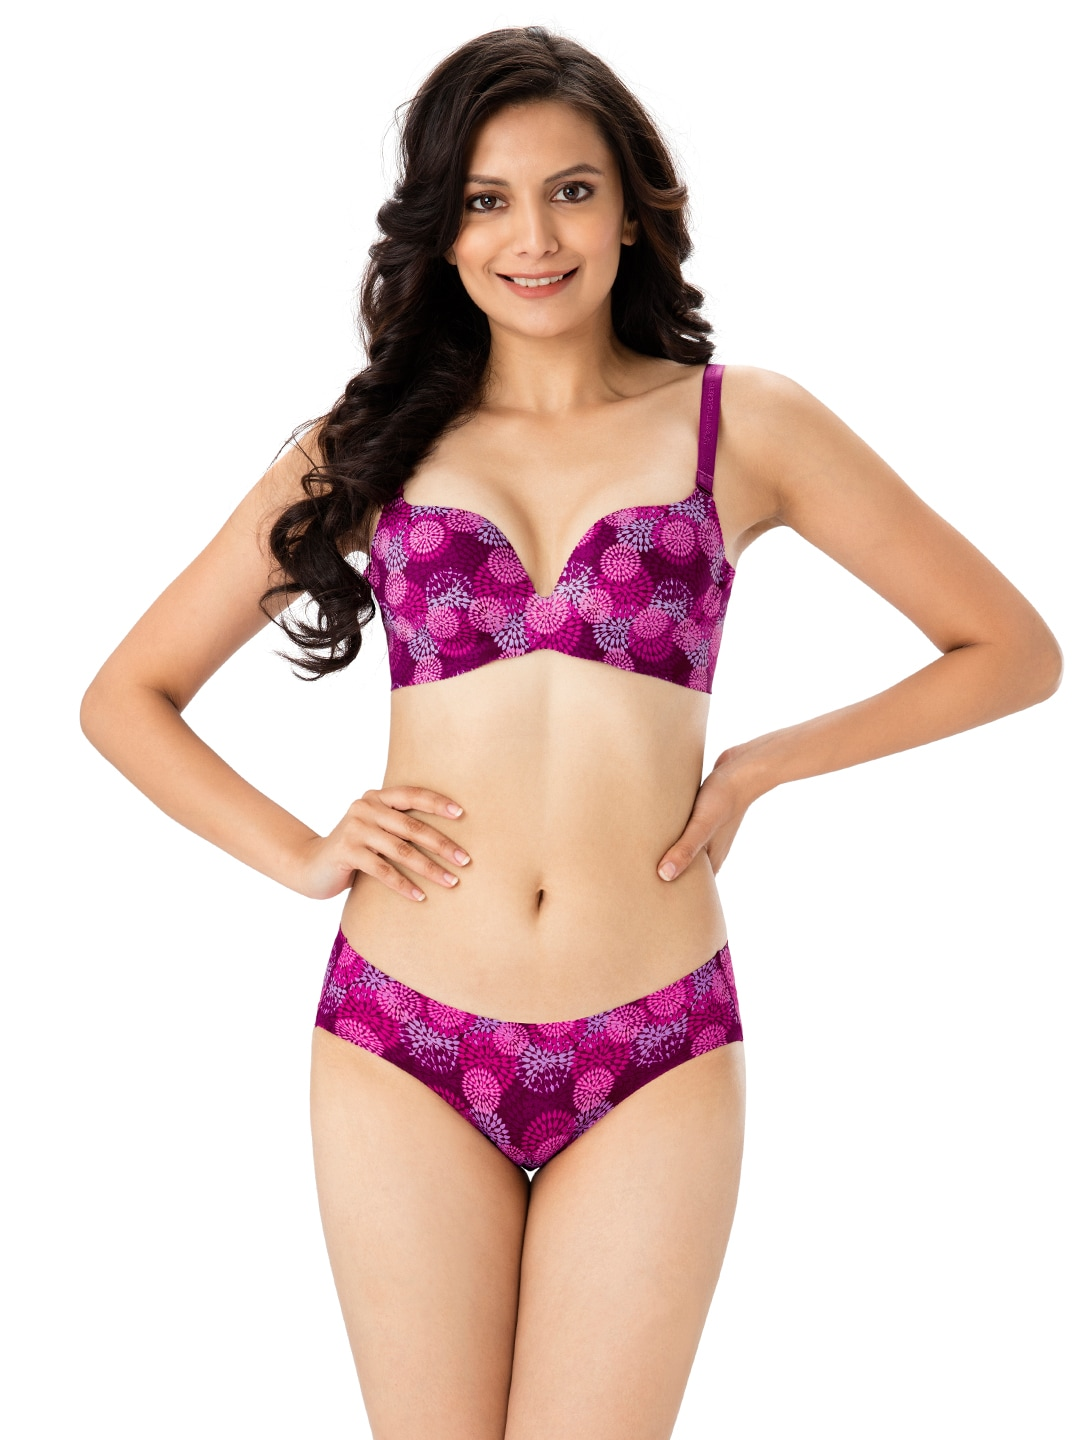 cbcafc31879 Bobs Women Women Lingerie - Buy Bobs Women Women Lingerie online in India